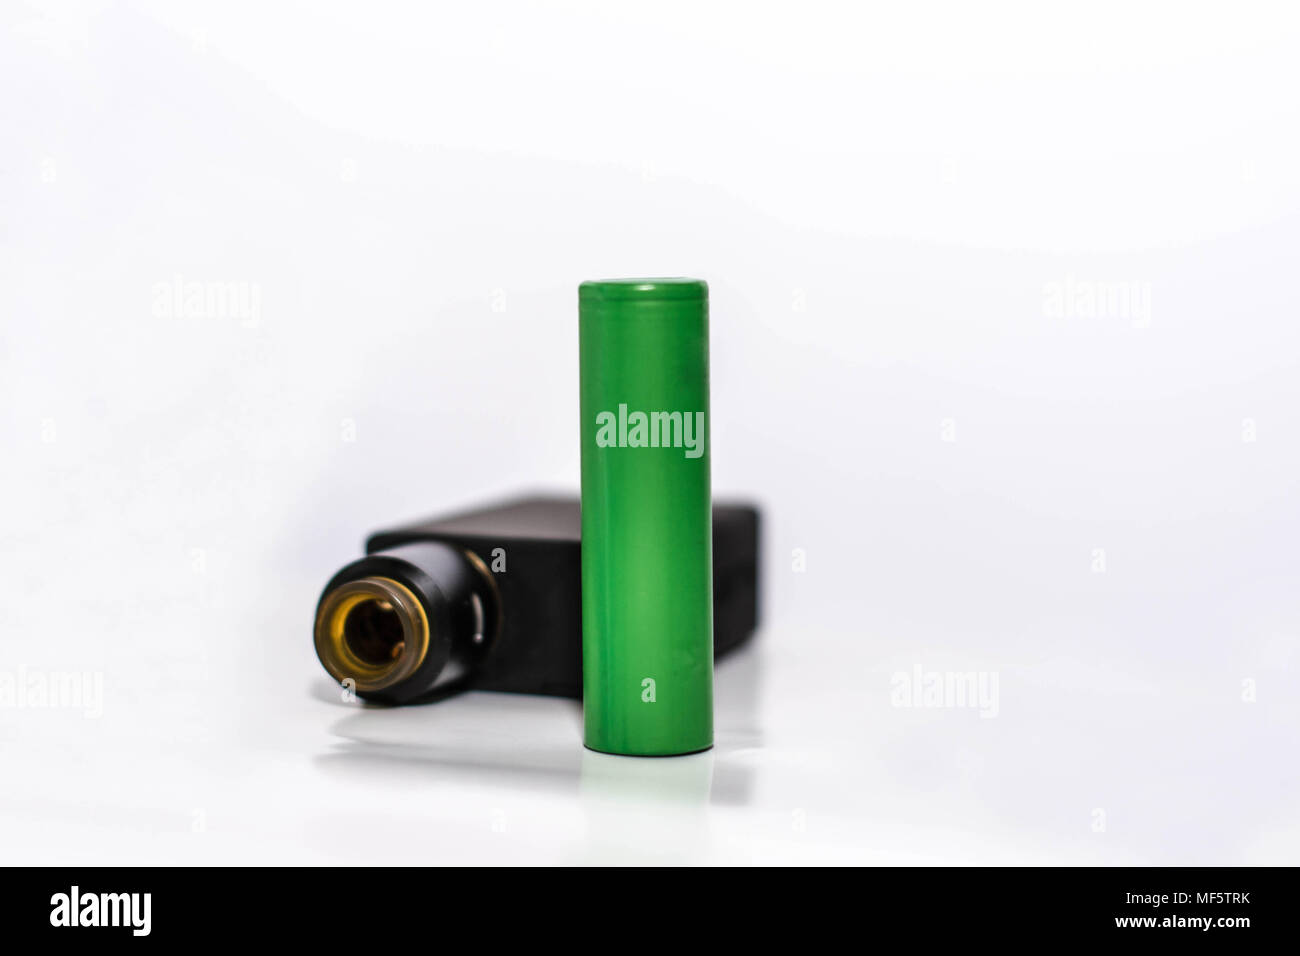 personal vaporizer with battery and q juice or e liquid, green battery and black e ciggaretes with liquid isolated in white background - Stock Image